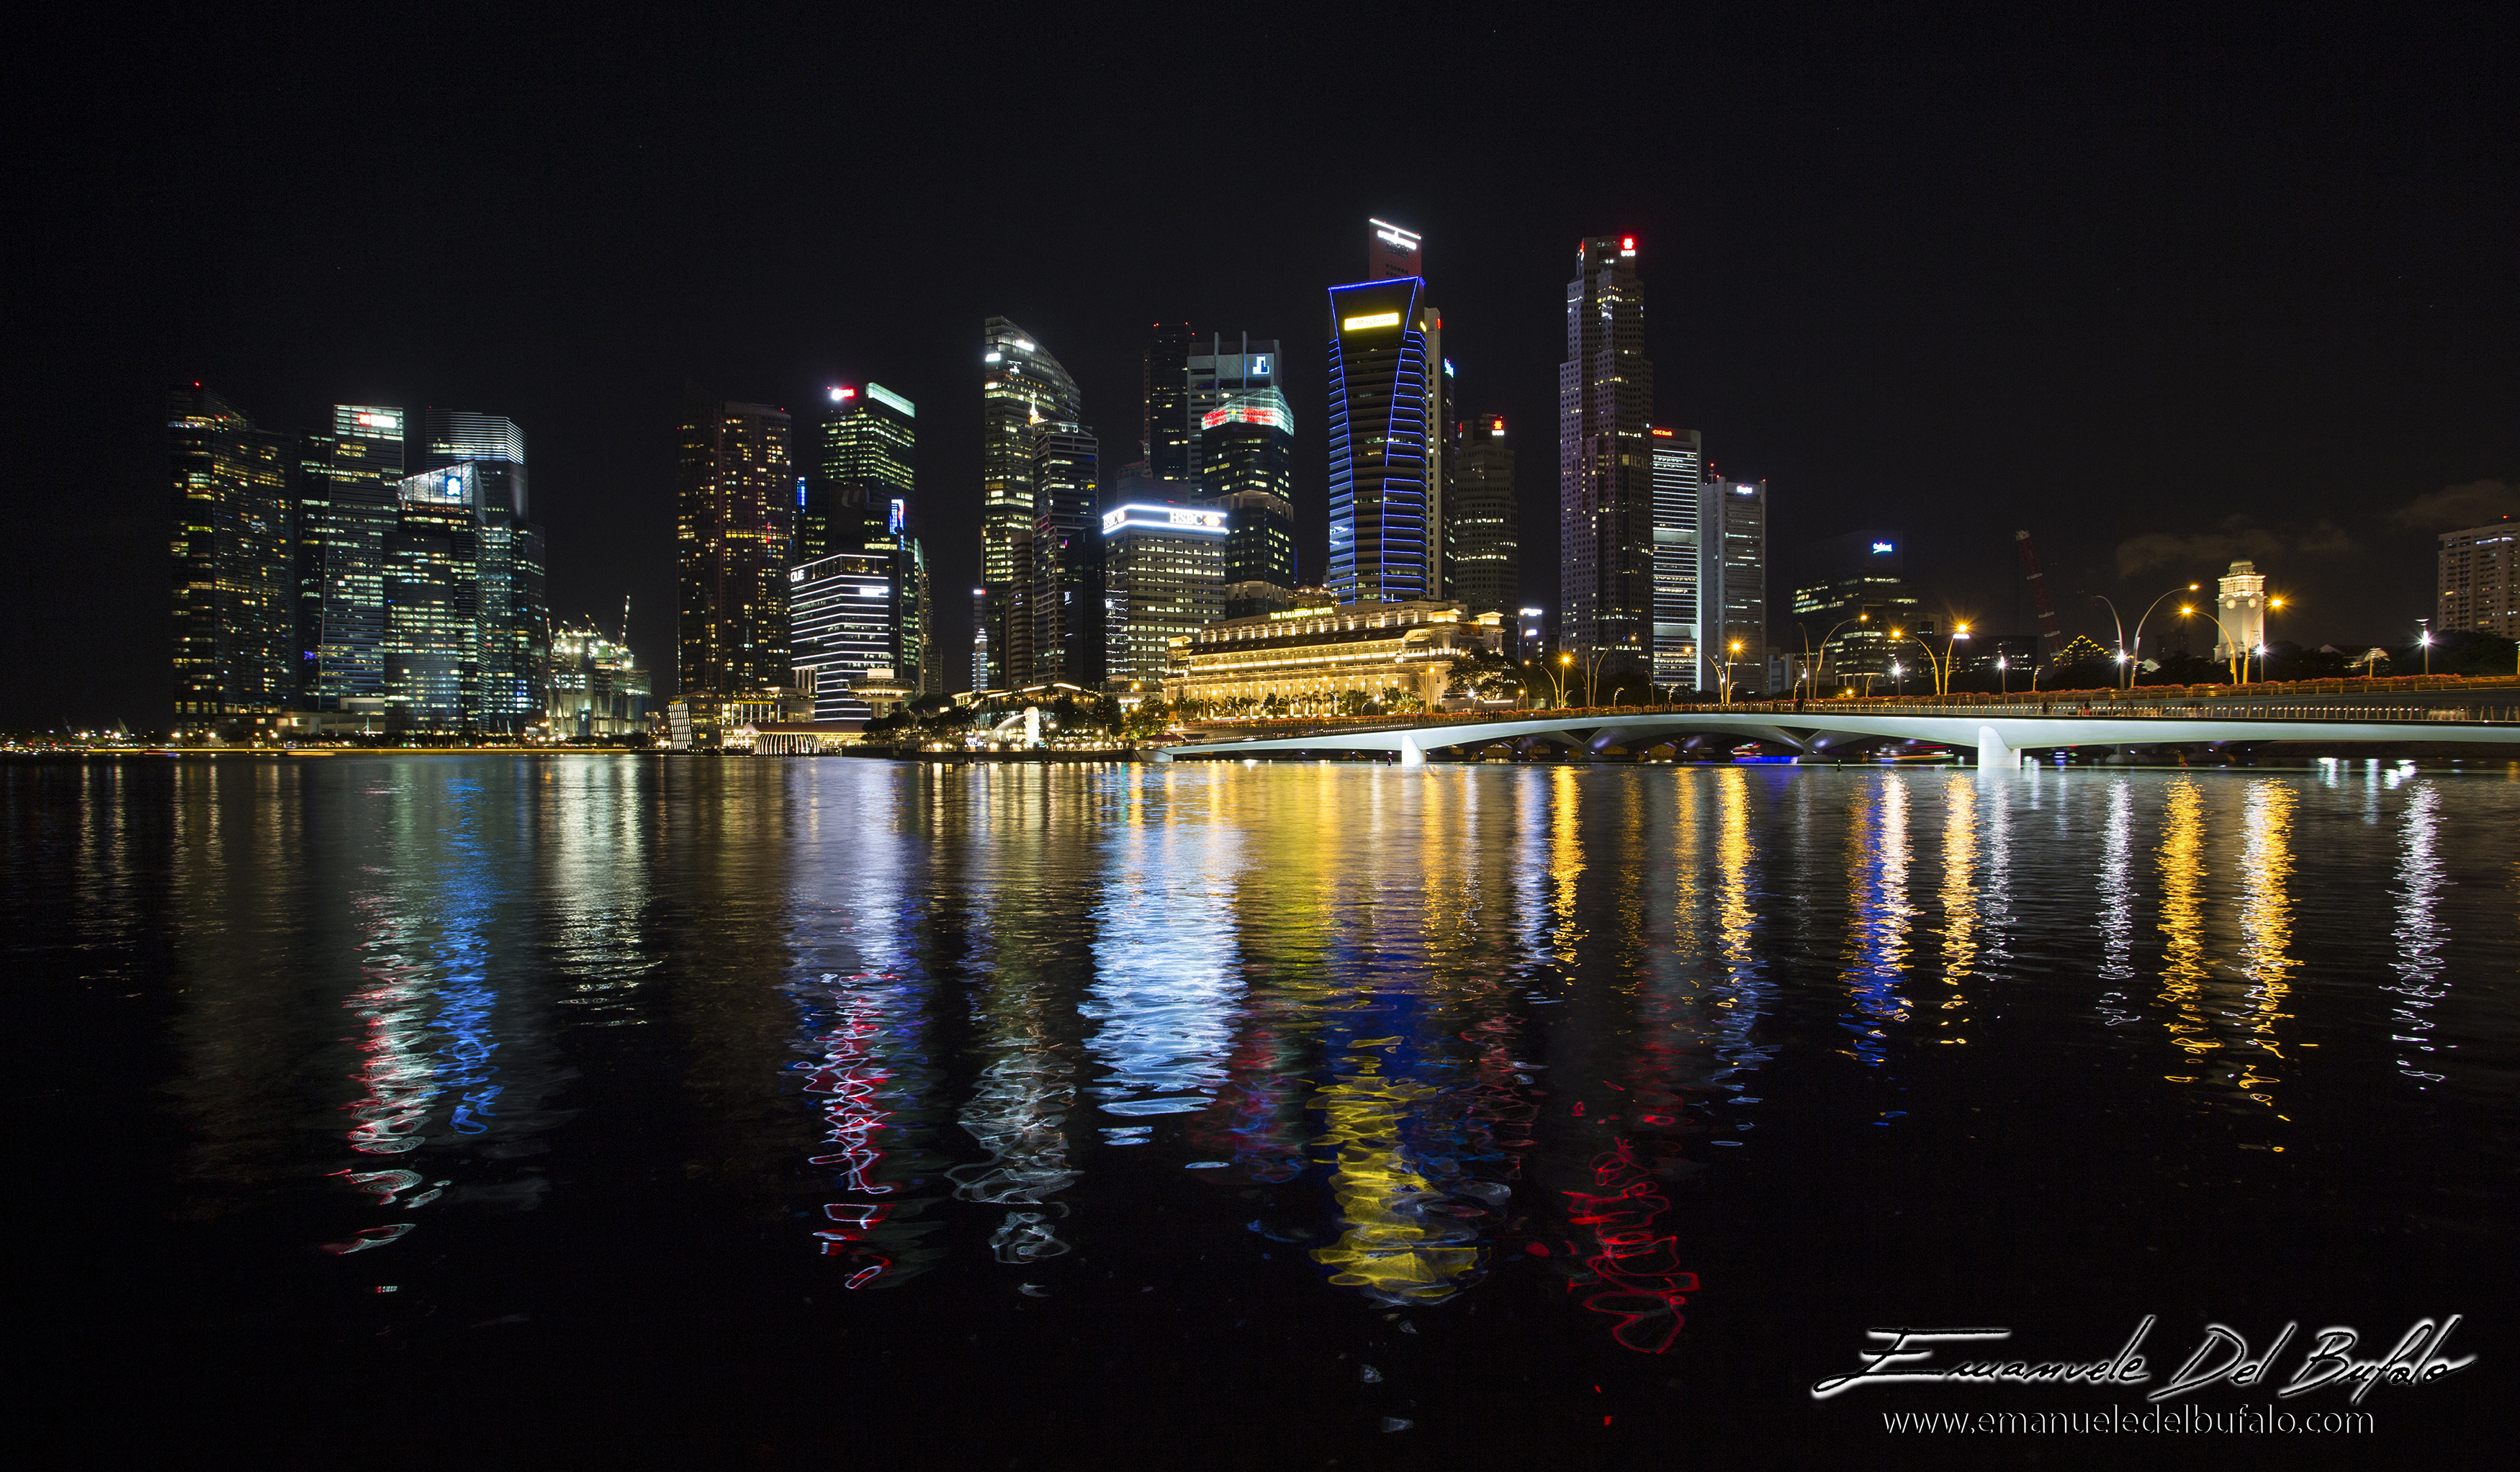 www.emanueledelbufalo.com #singapore #night #cityscape #skiline #light